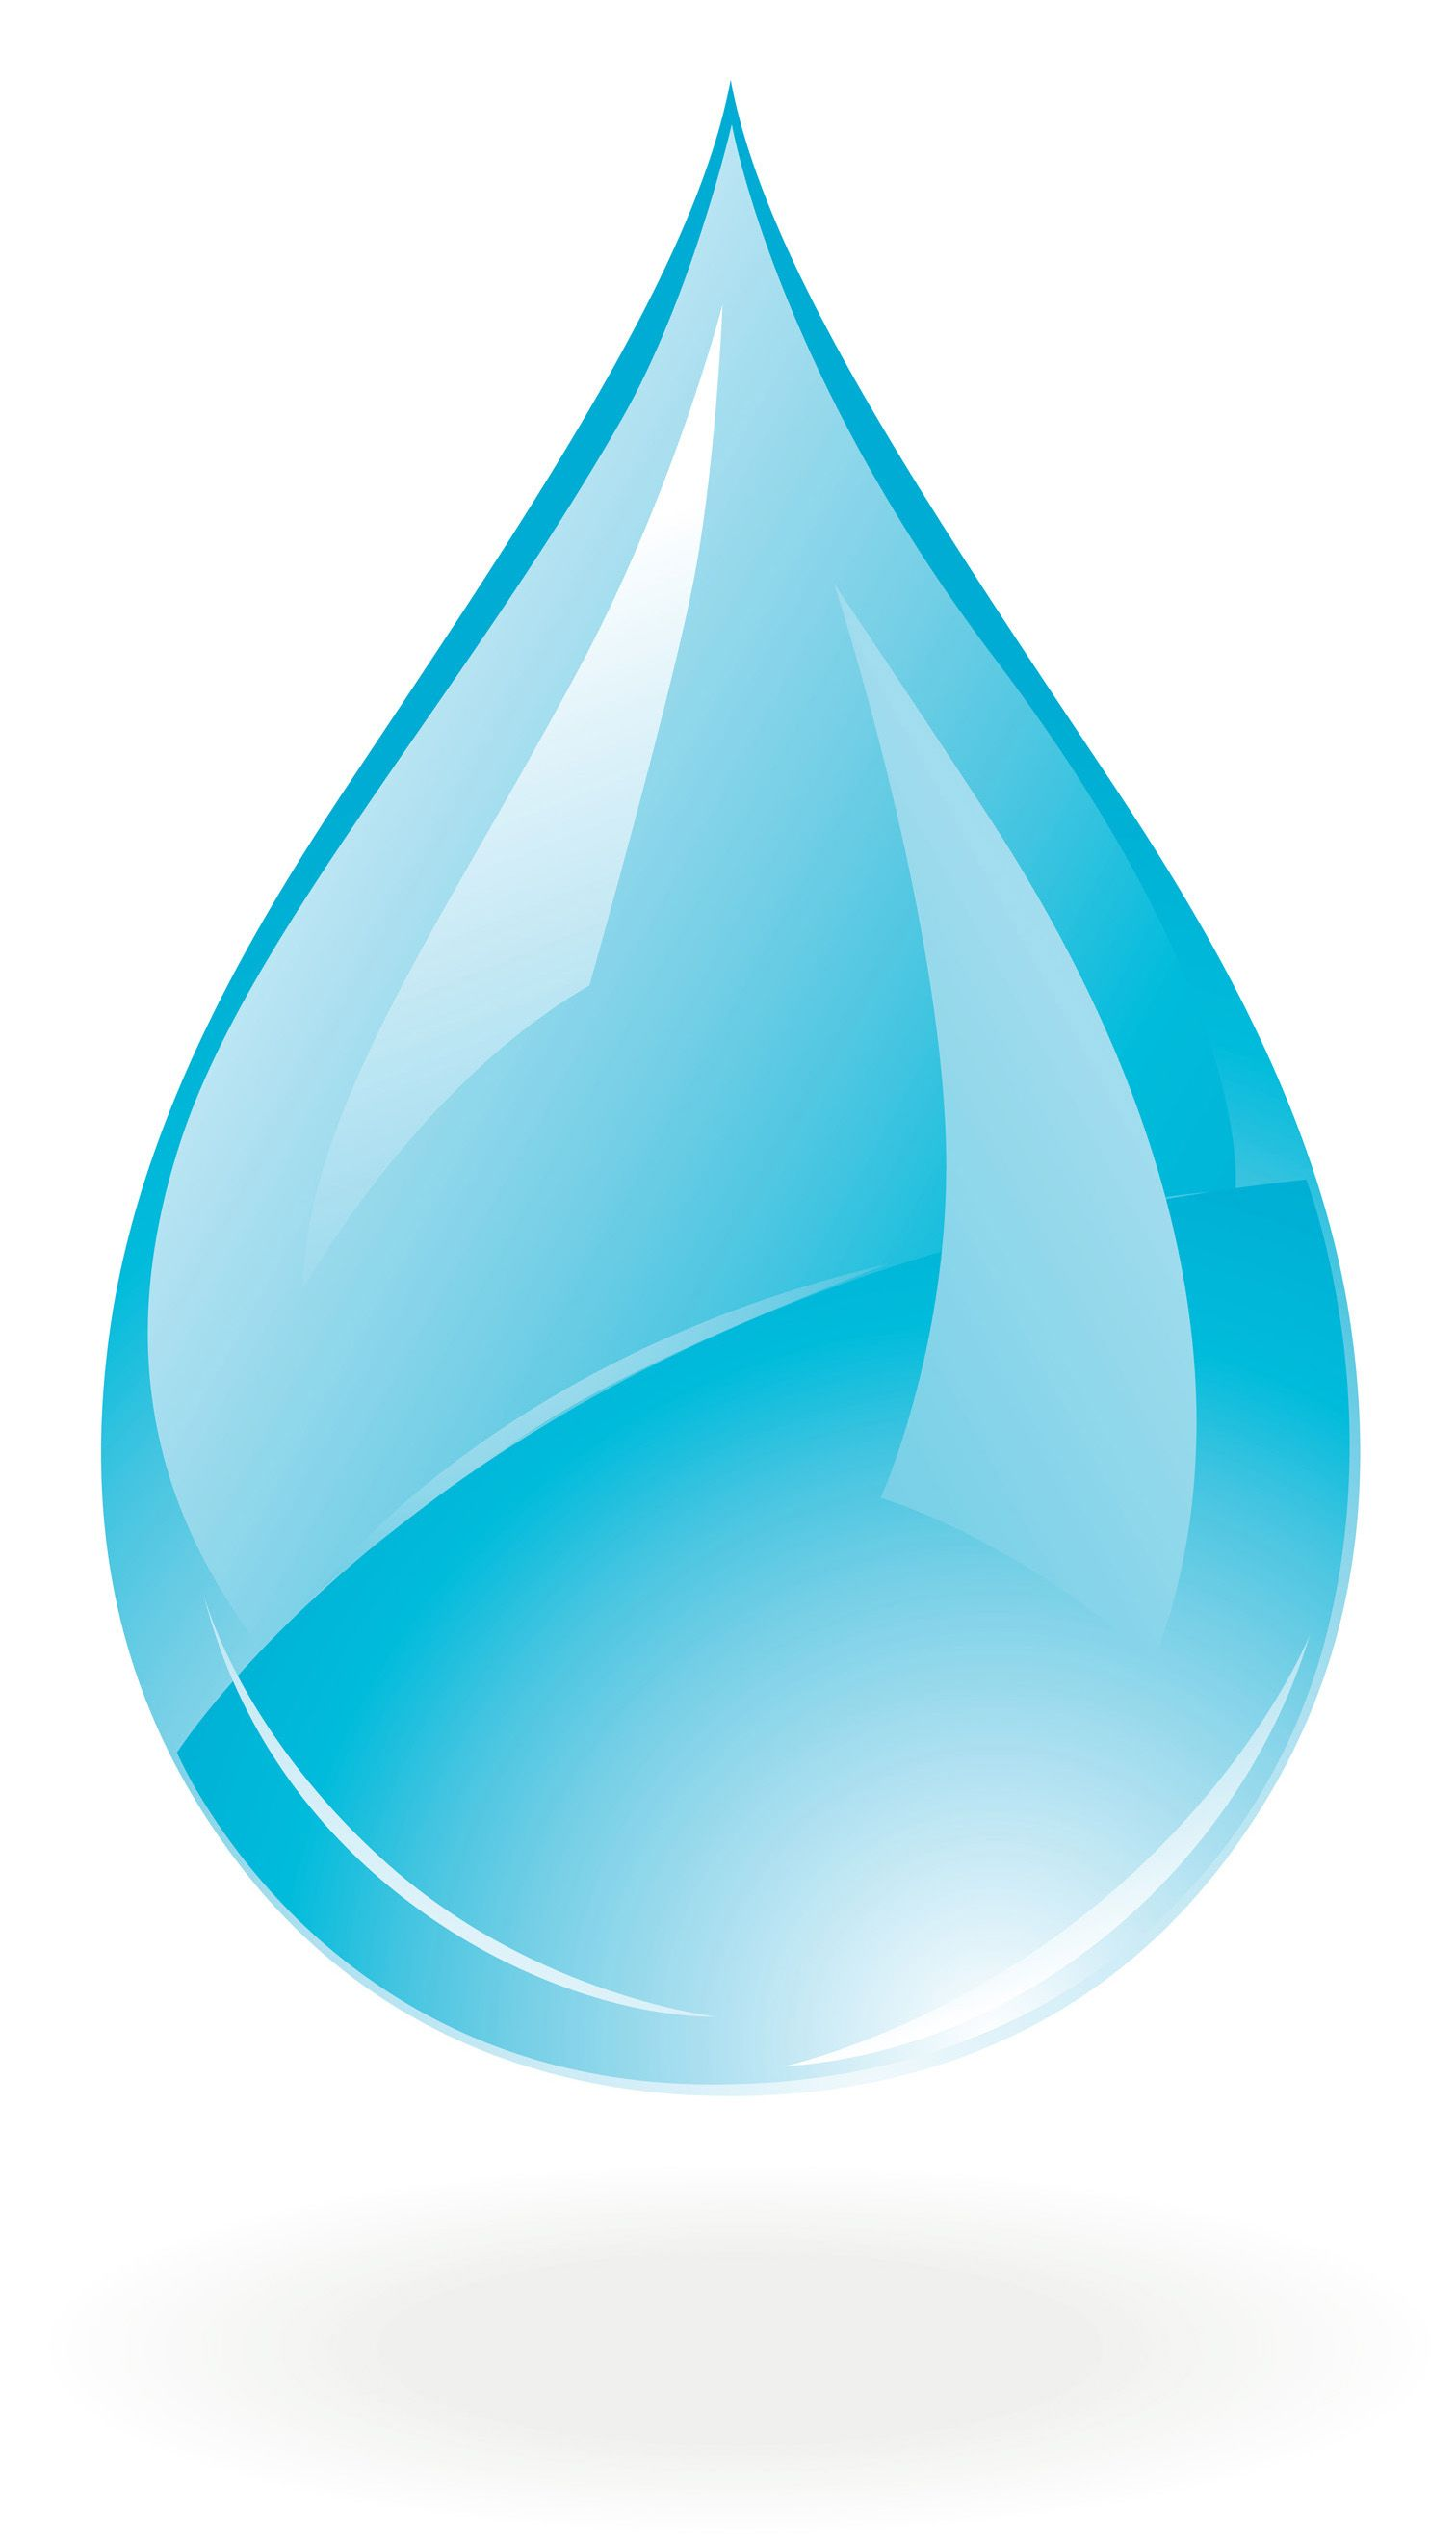 water drop psd clipart planning makes me happy